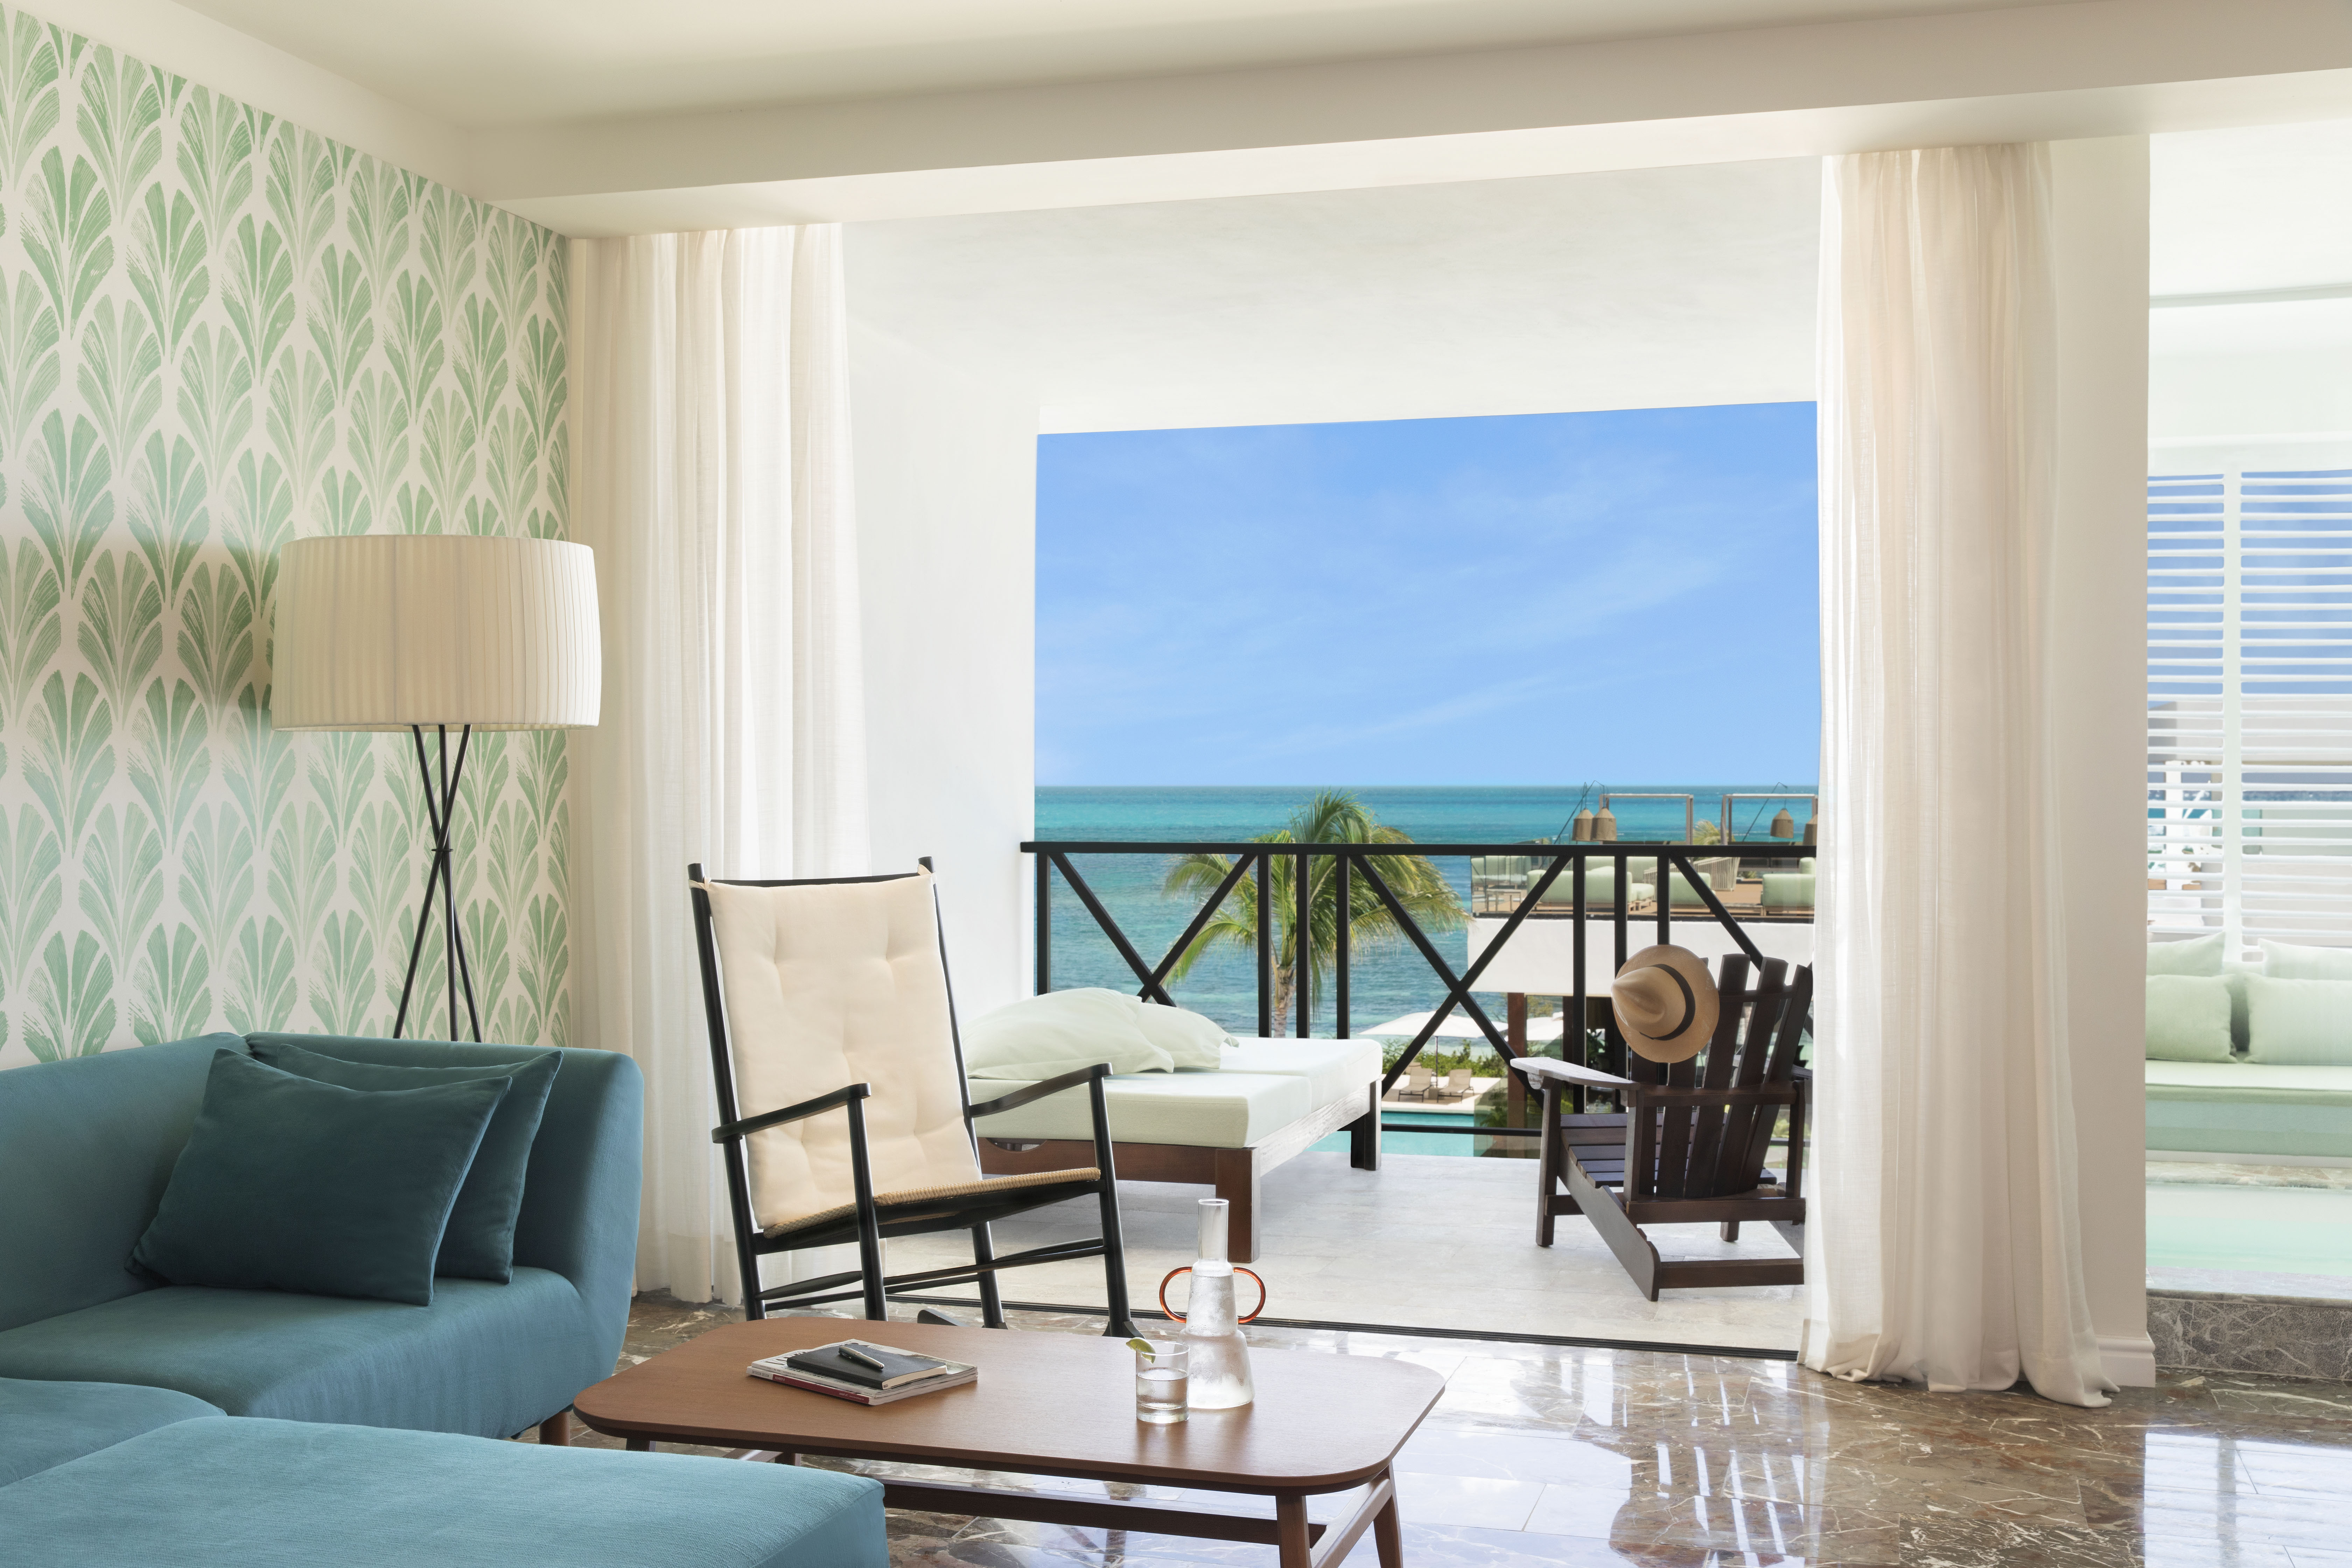 Excellence Oyster Bay Accommodations